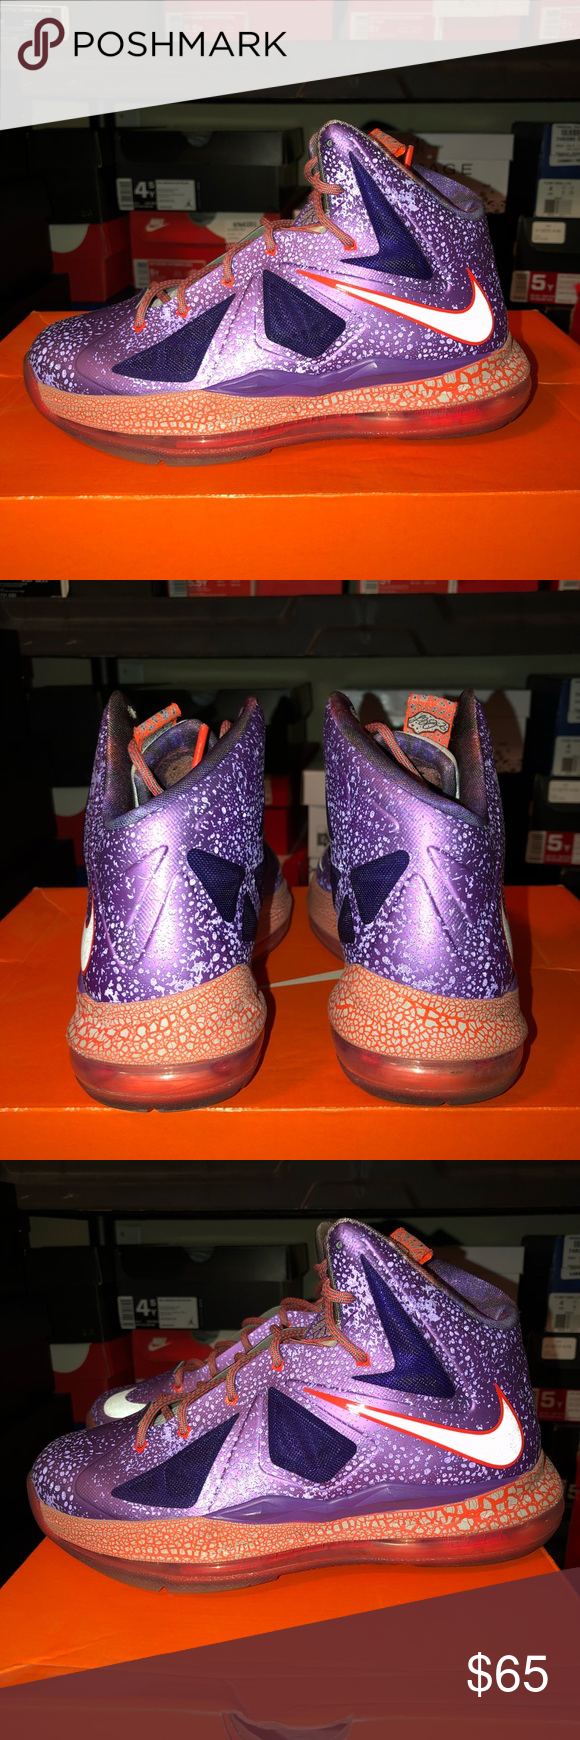 """4c514cac399 Nike Lebron X """"All Star Game"""" (ASG) size 5 GS Gradeschool size 5 9 10  condition Worn once to class Nike Shoes Sneakers"""